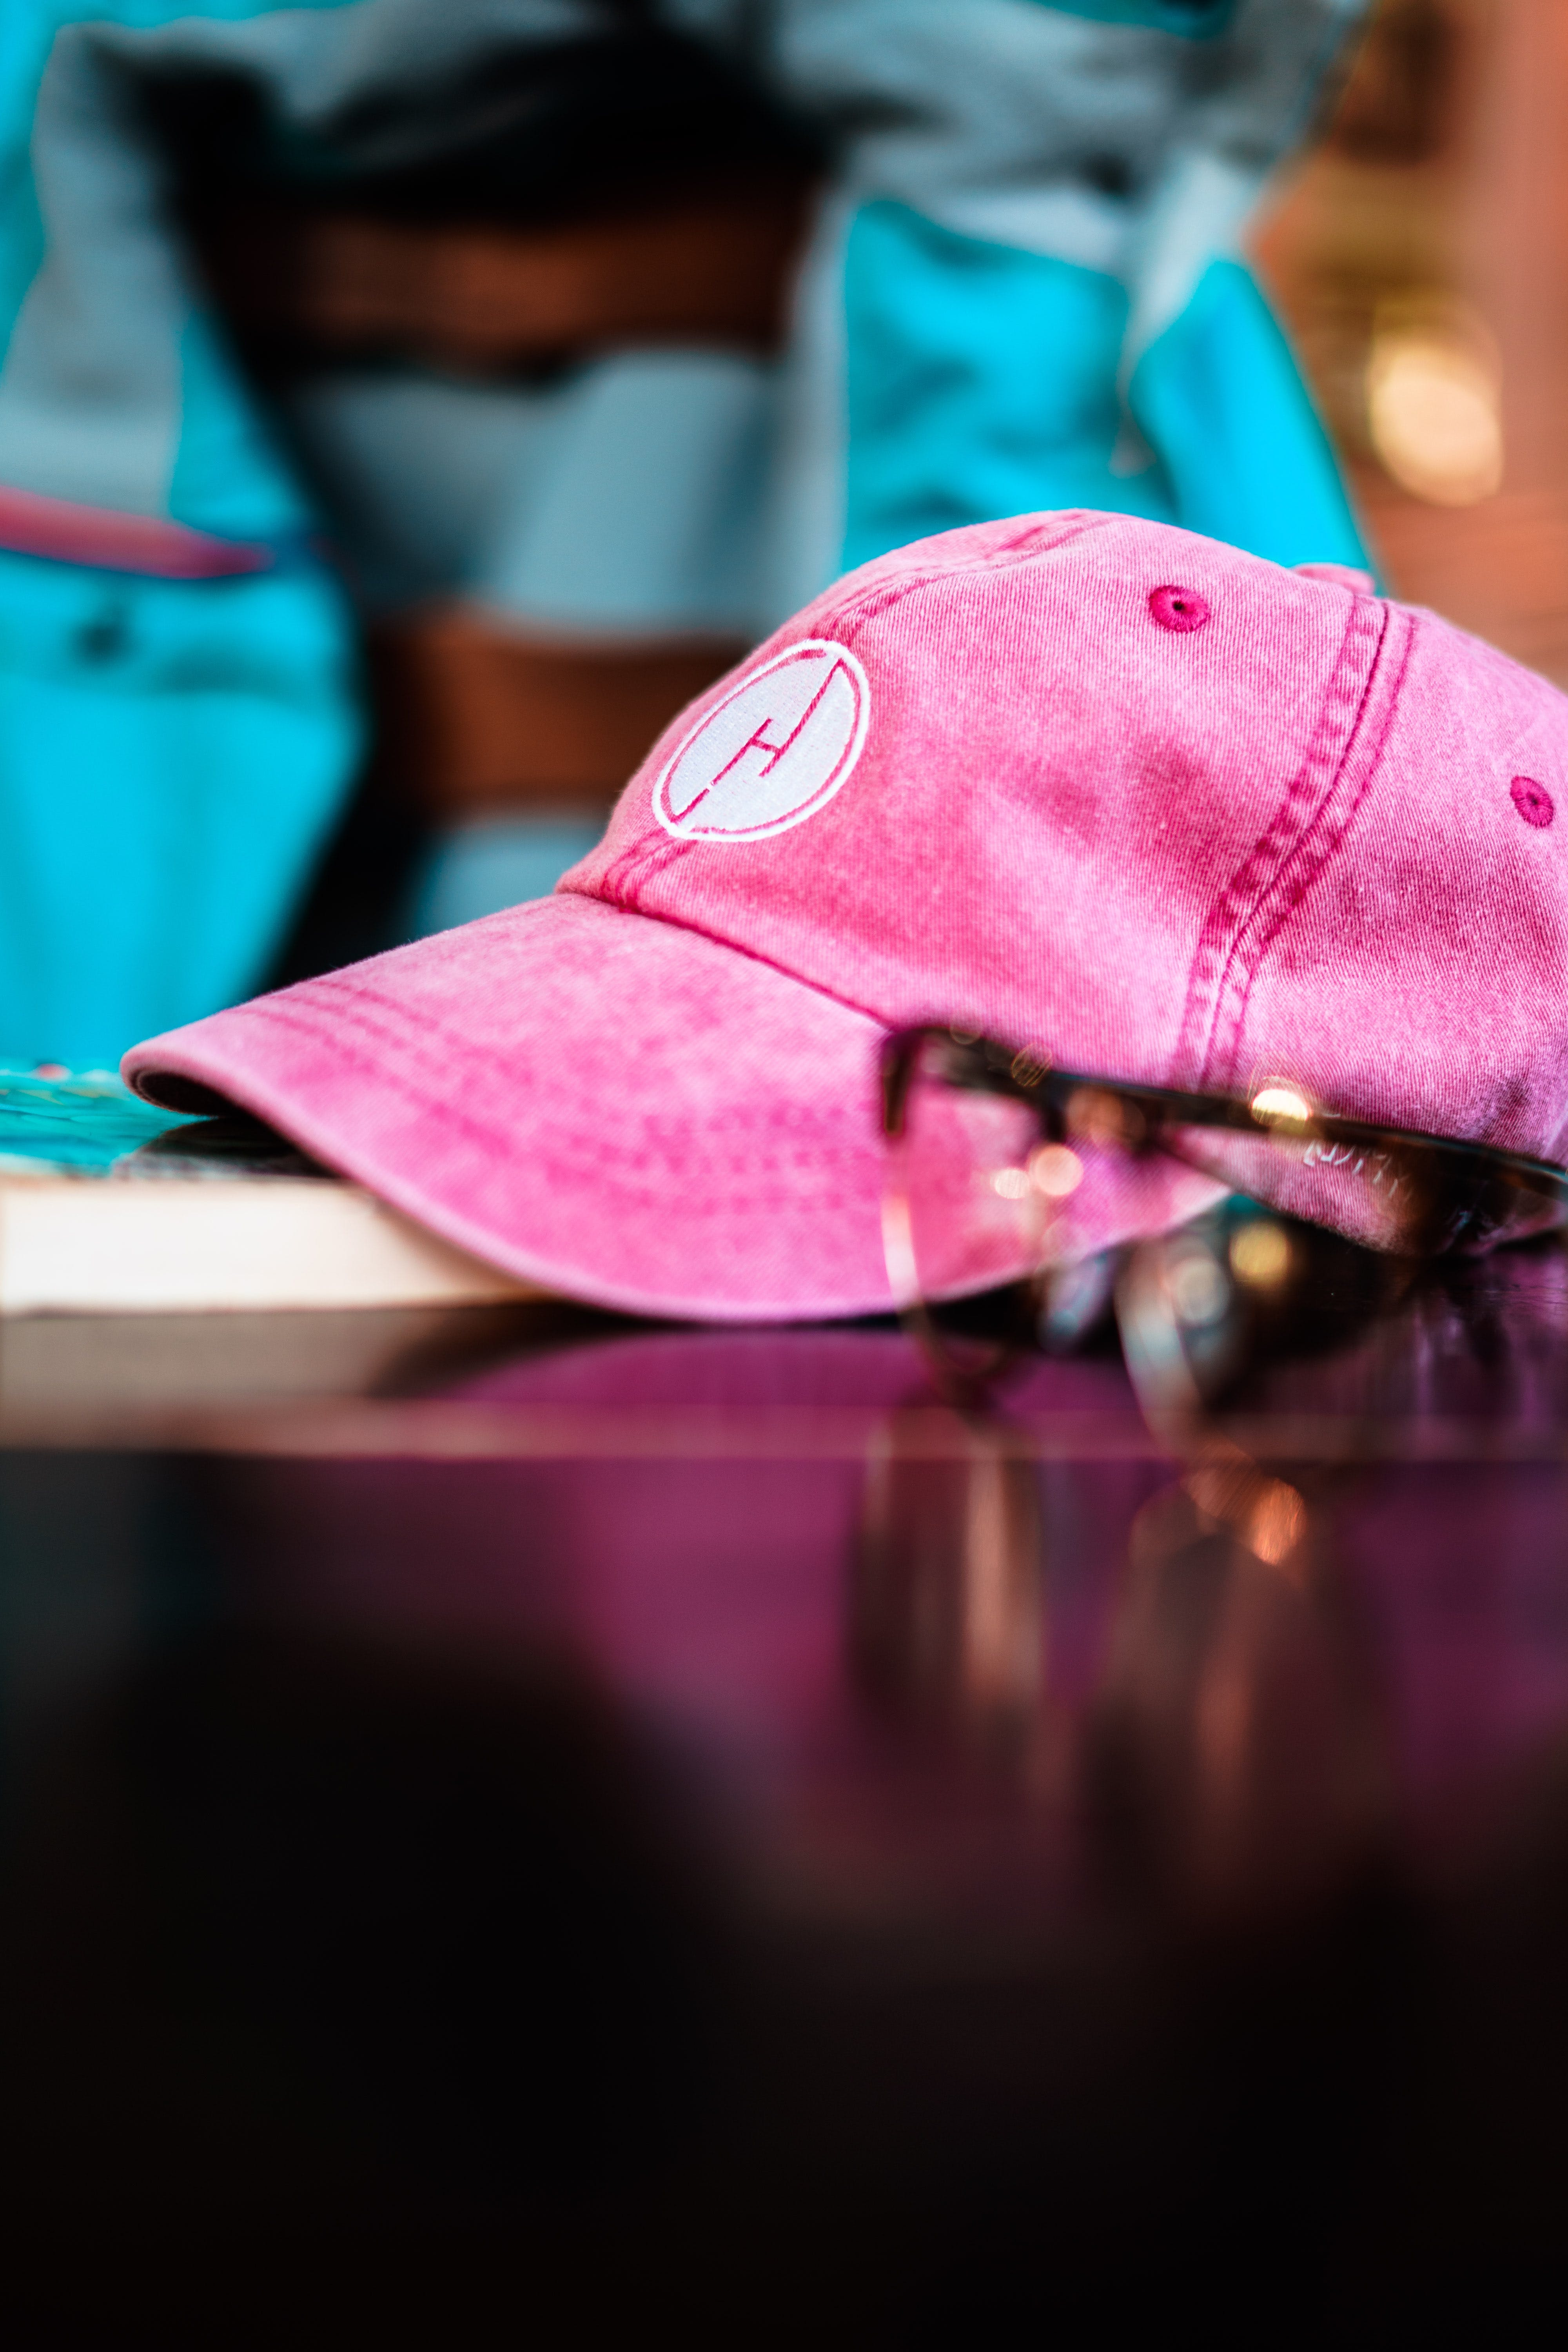 Selective Focus Photography of Pink Cap